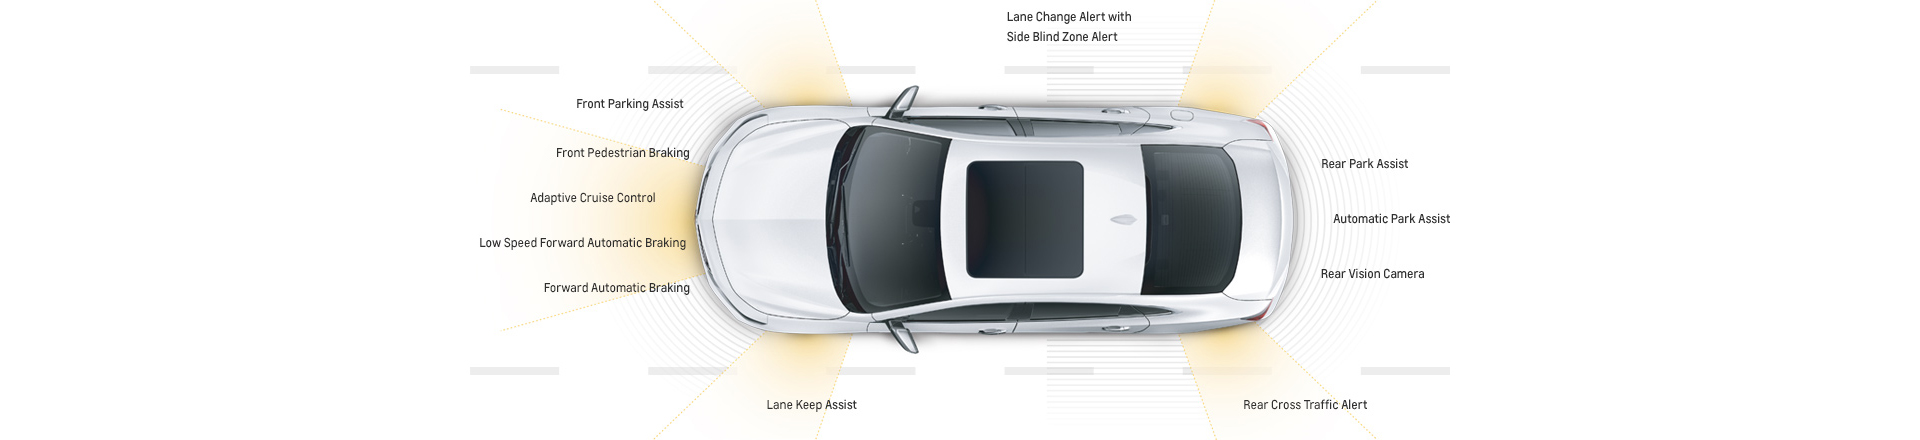 A top-down view of a white 2017 Chevy Malibu with simulated safety features on all sides.